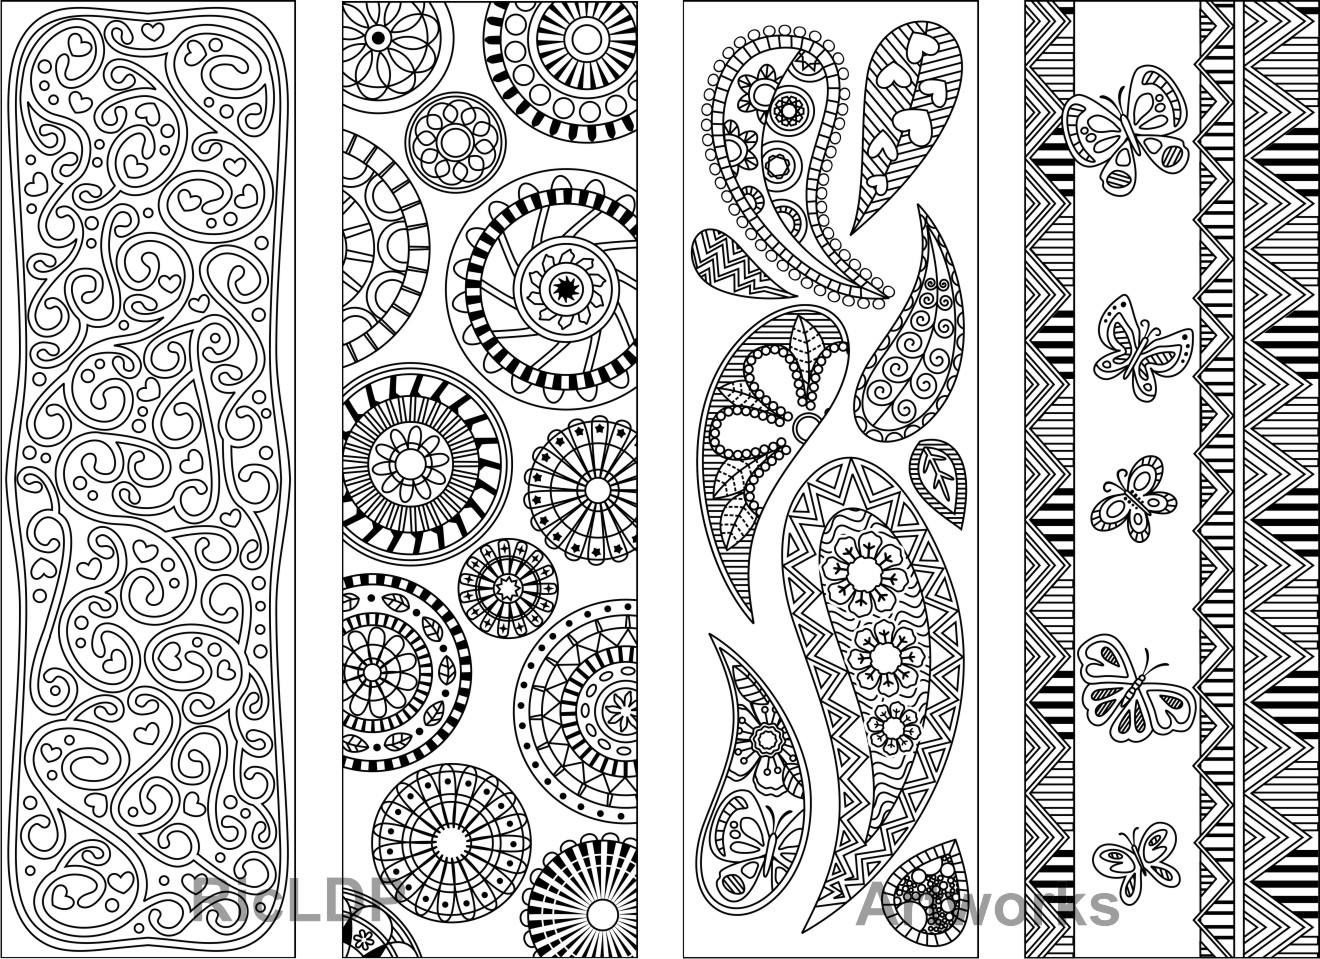 Set of 8 Coloring Bookmarks with Abstract Patterns